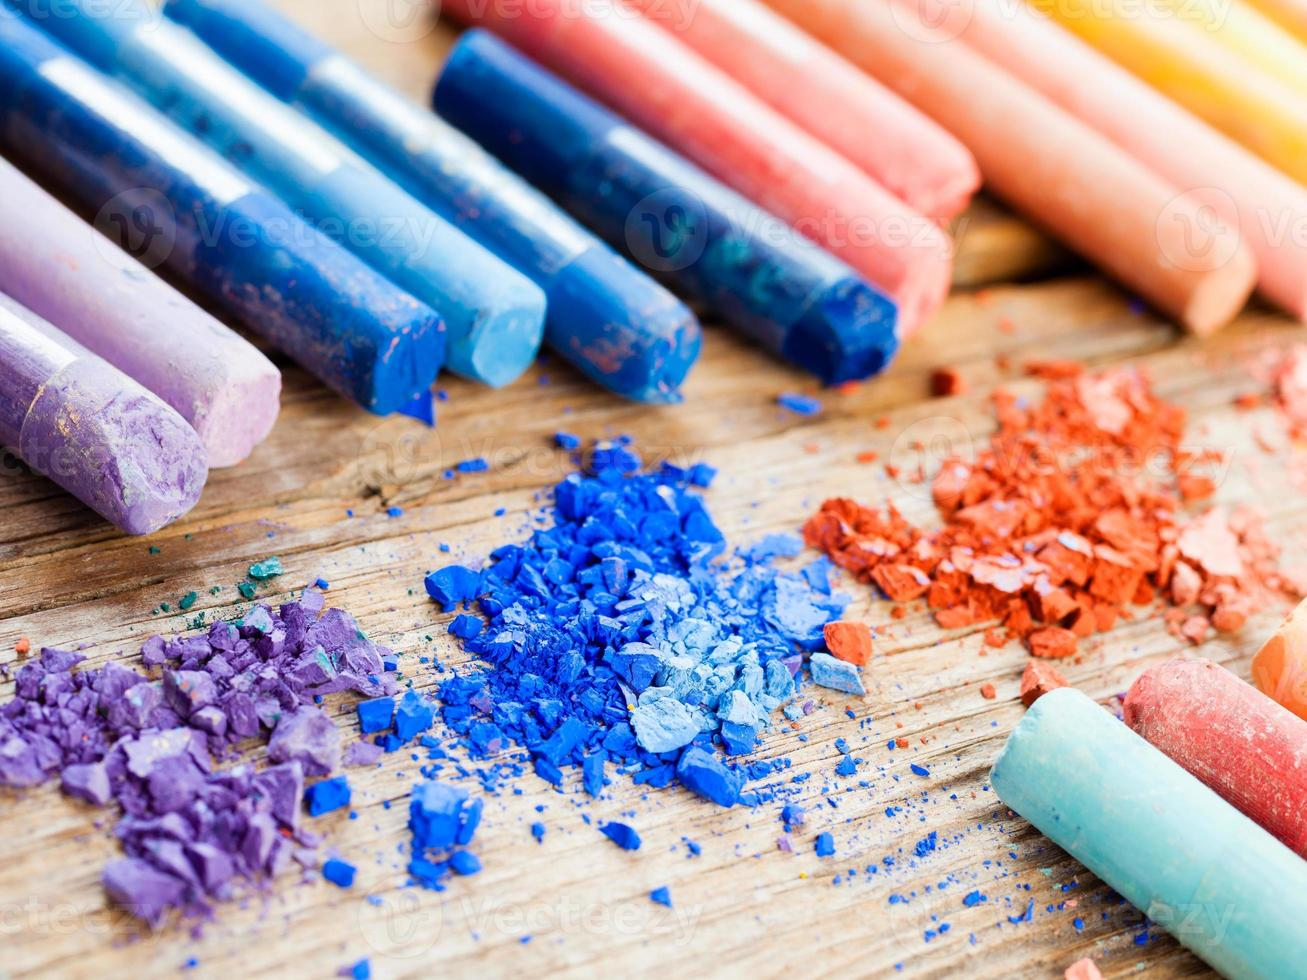 Rainbow colored pastel crayons with crushed chalk close up photo